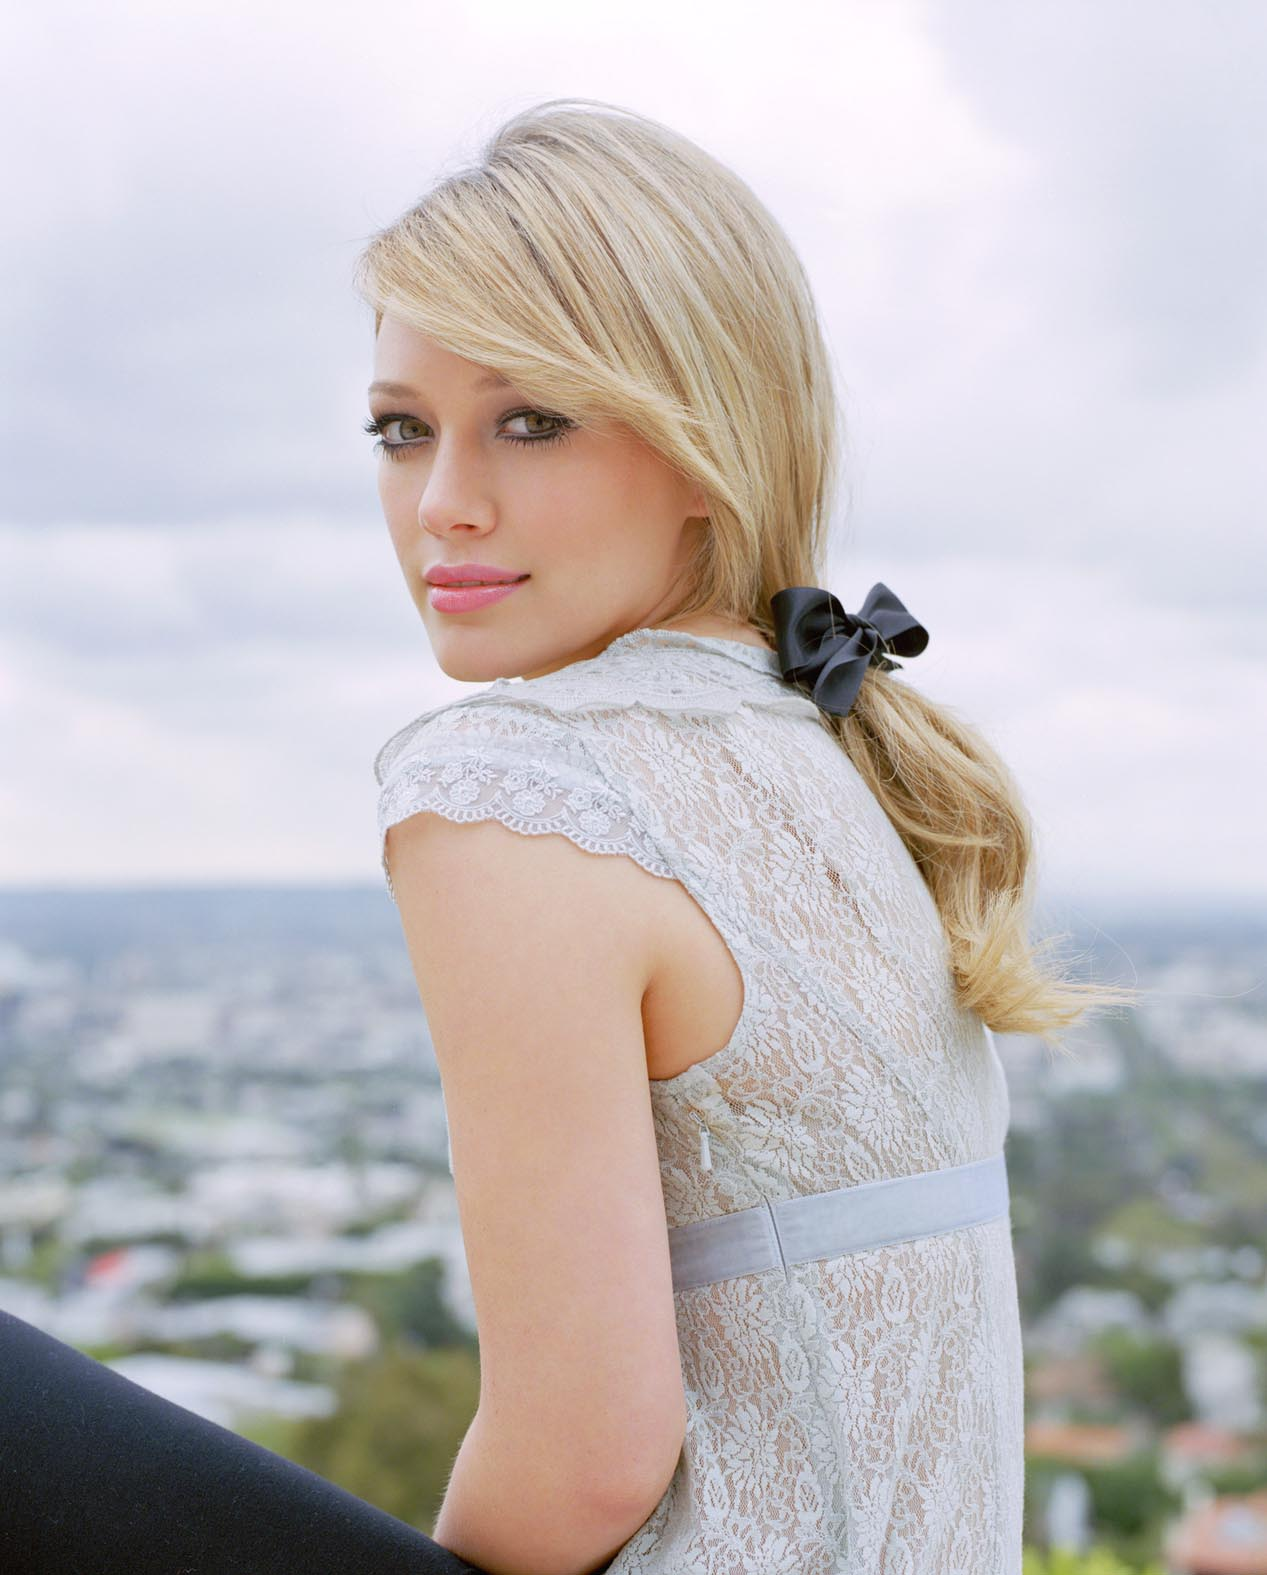 Sweet Girls Wallpaper: Latest Hollywood Hottest Wallpapers: Hilary Duff 2011